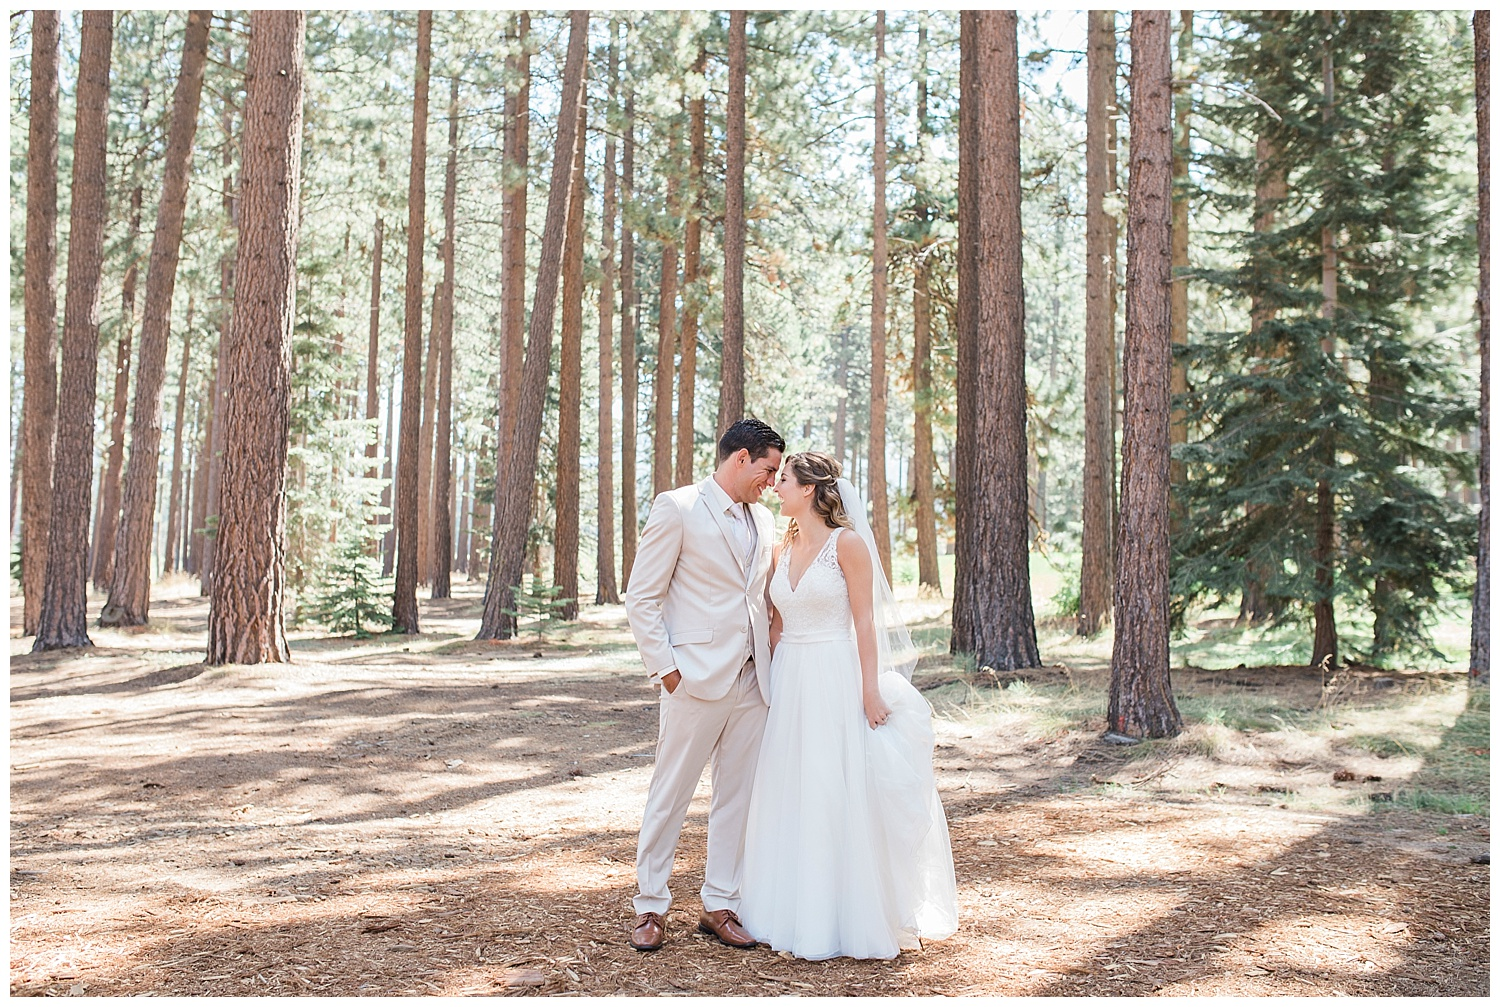 tahoe-wedding-edgewood-nicole-quiroz-photographer-lake-tahoe-california-sacramento-NICOLEQUIROZ_008.jpg